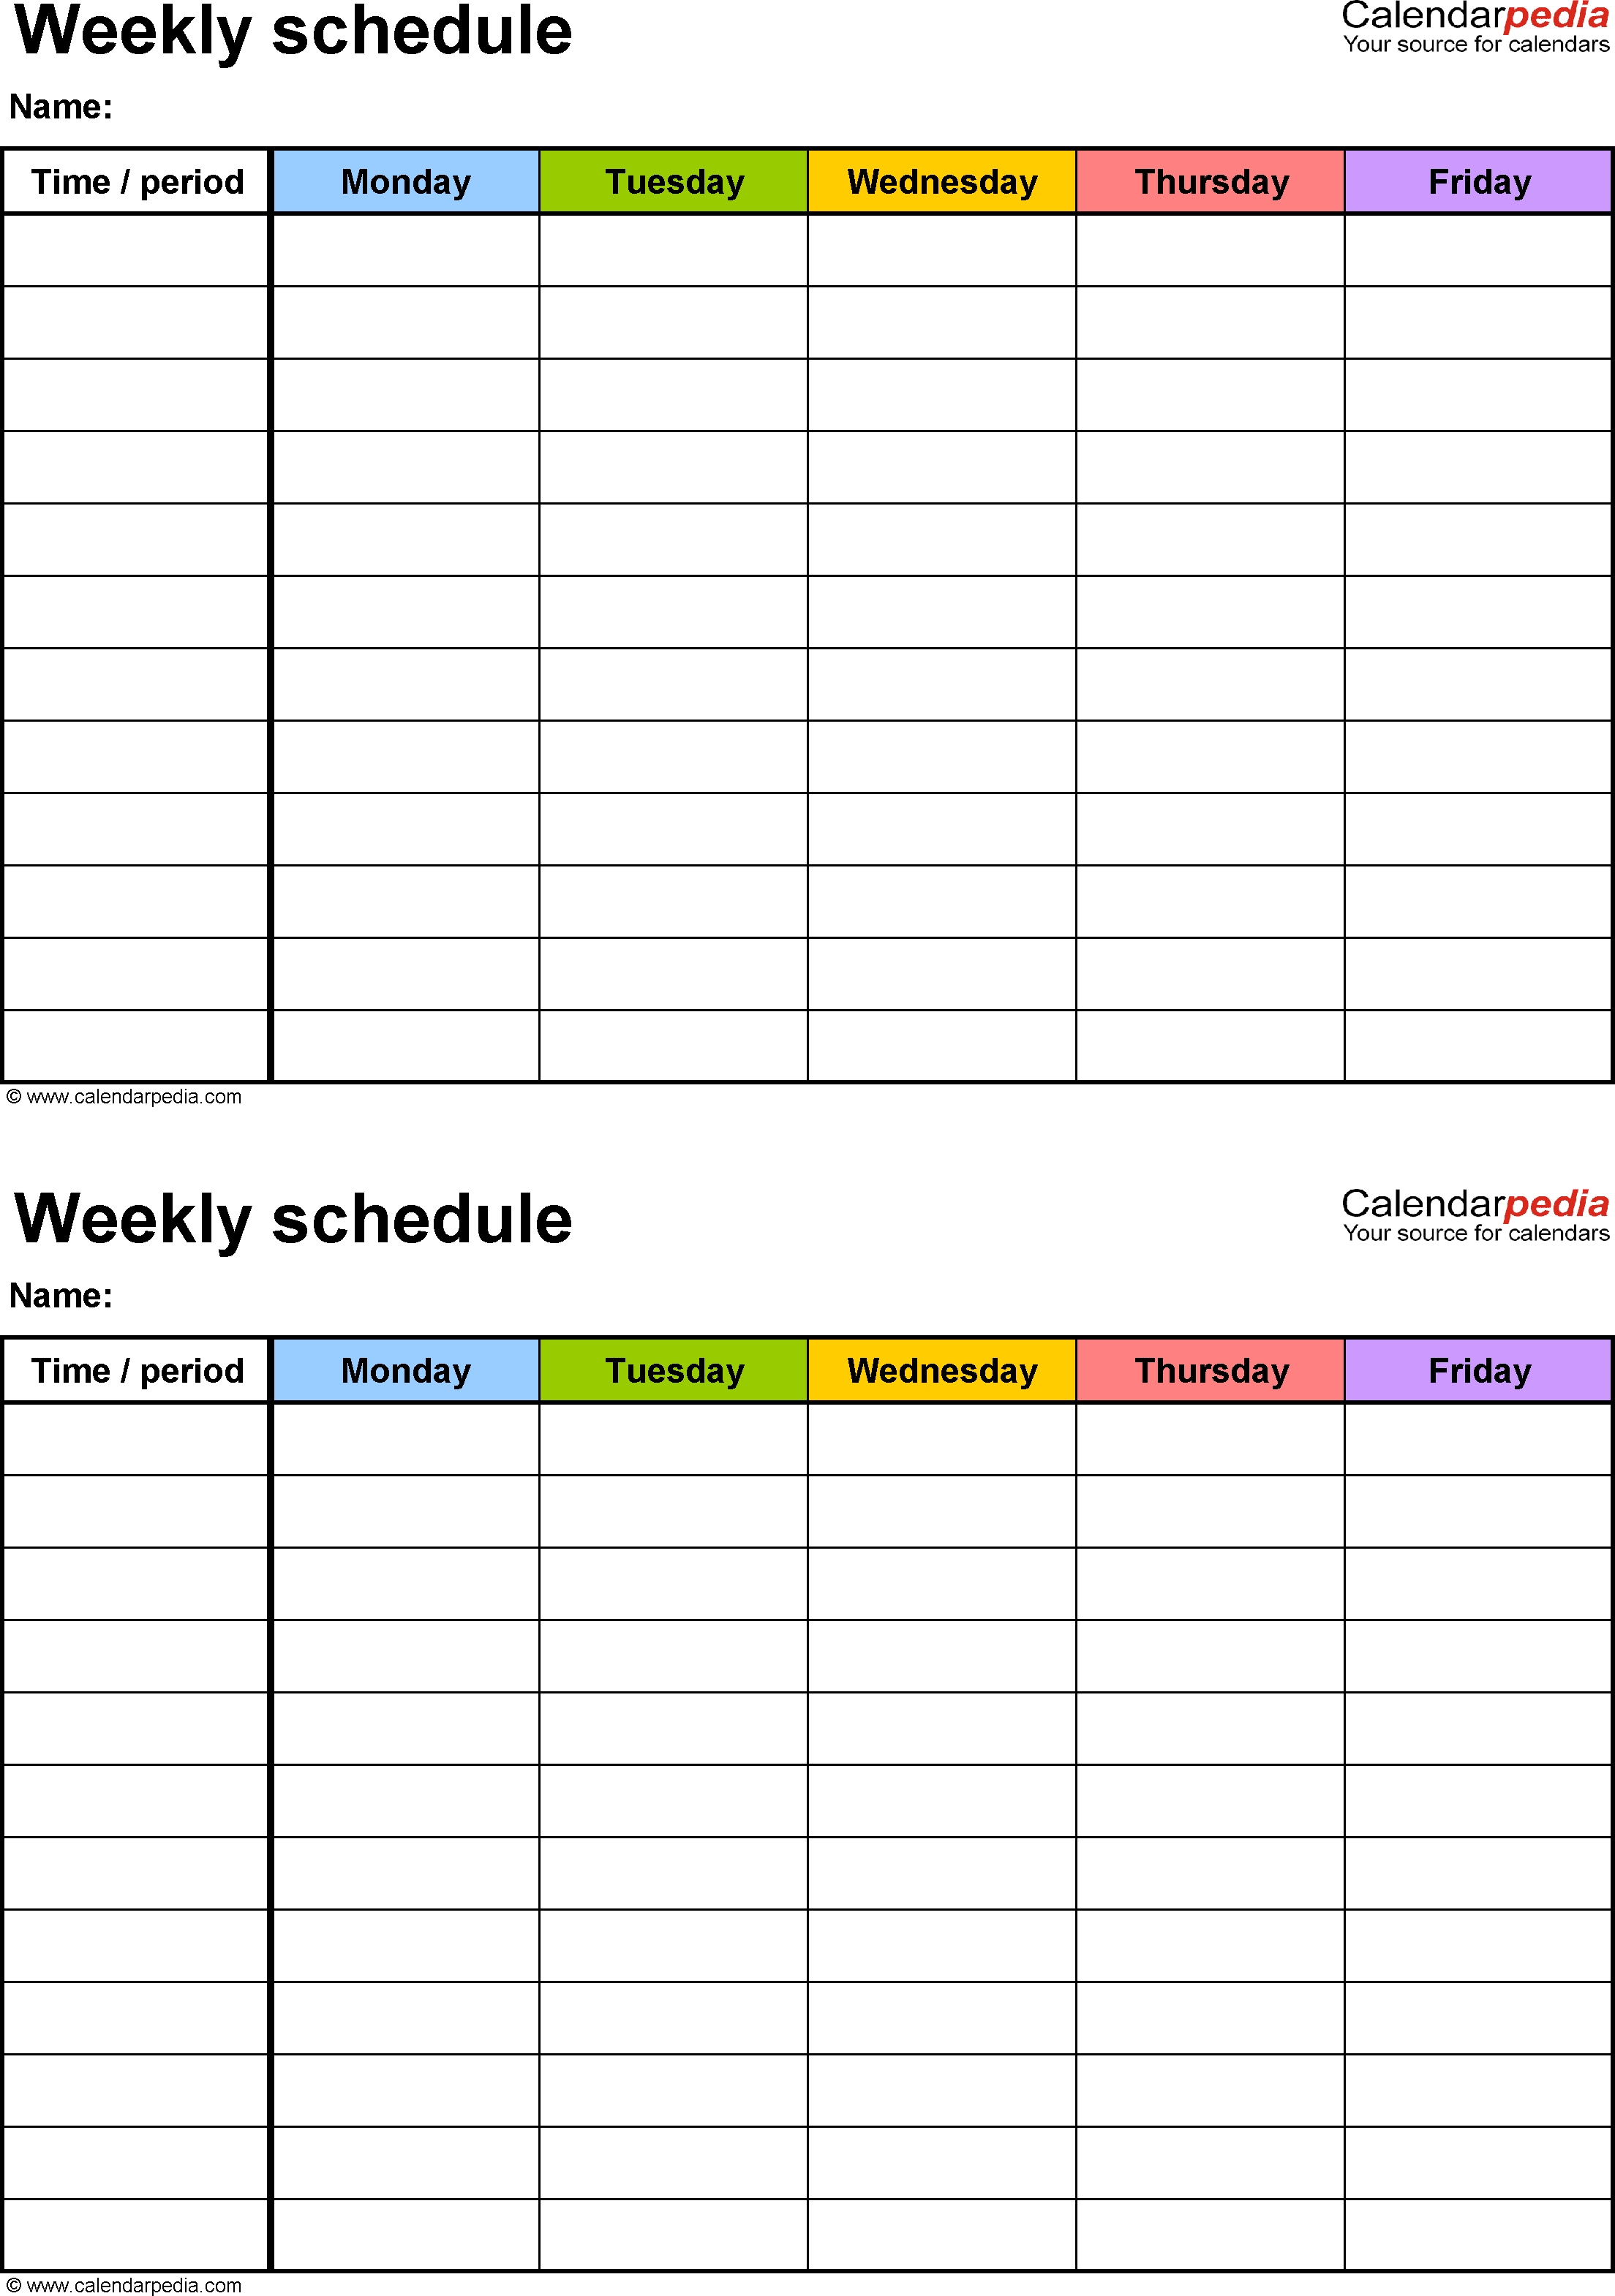 Weekly Schedule Template For Excel Version 3: 2 Schedules On One intended for Blank 5 Day School Timetable